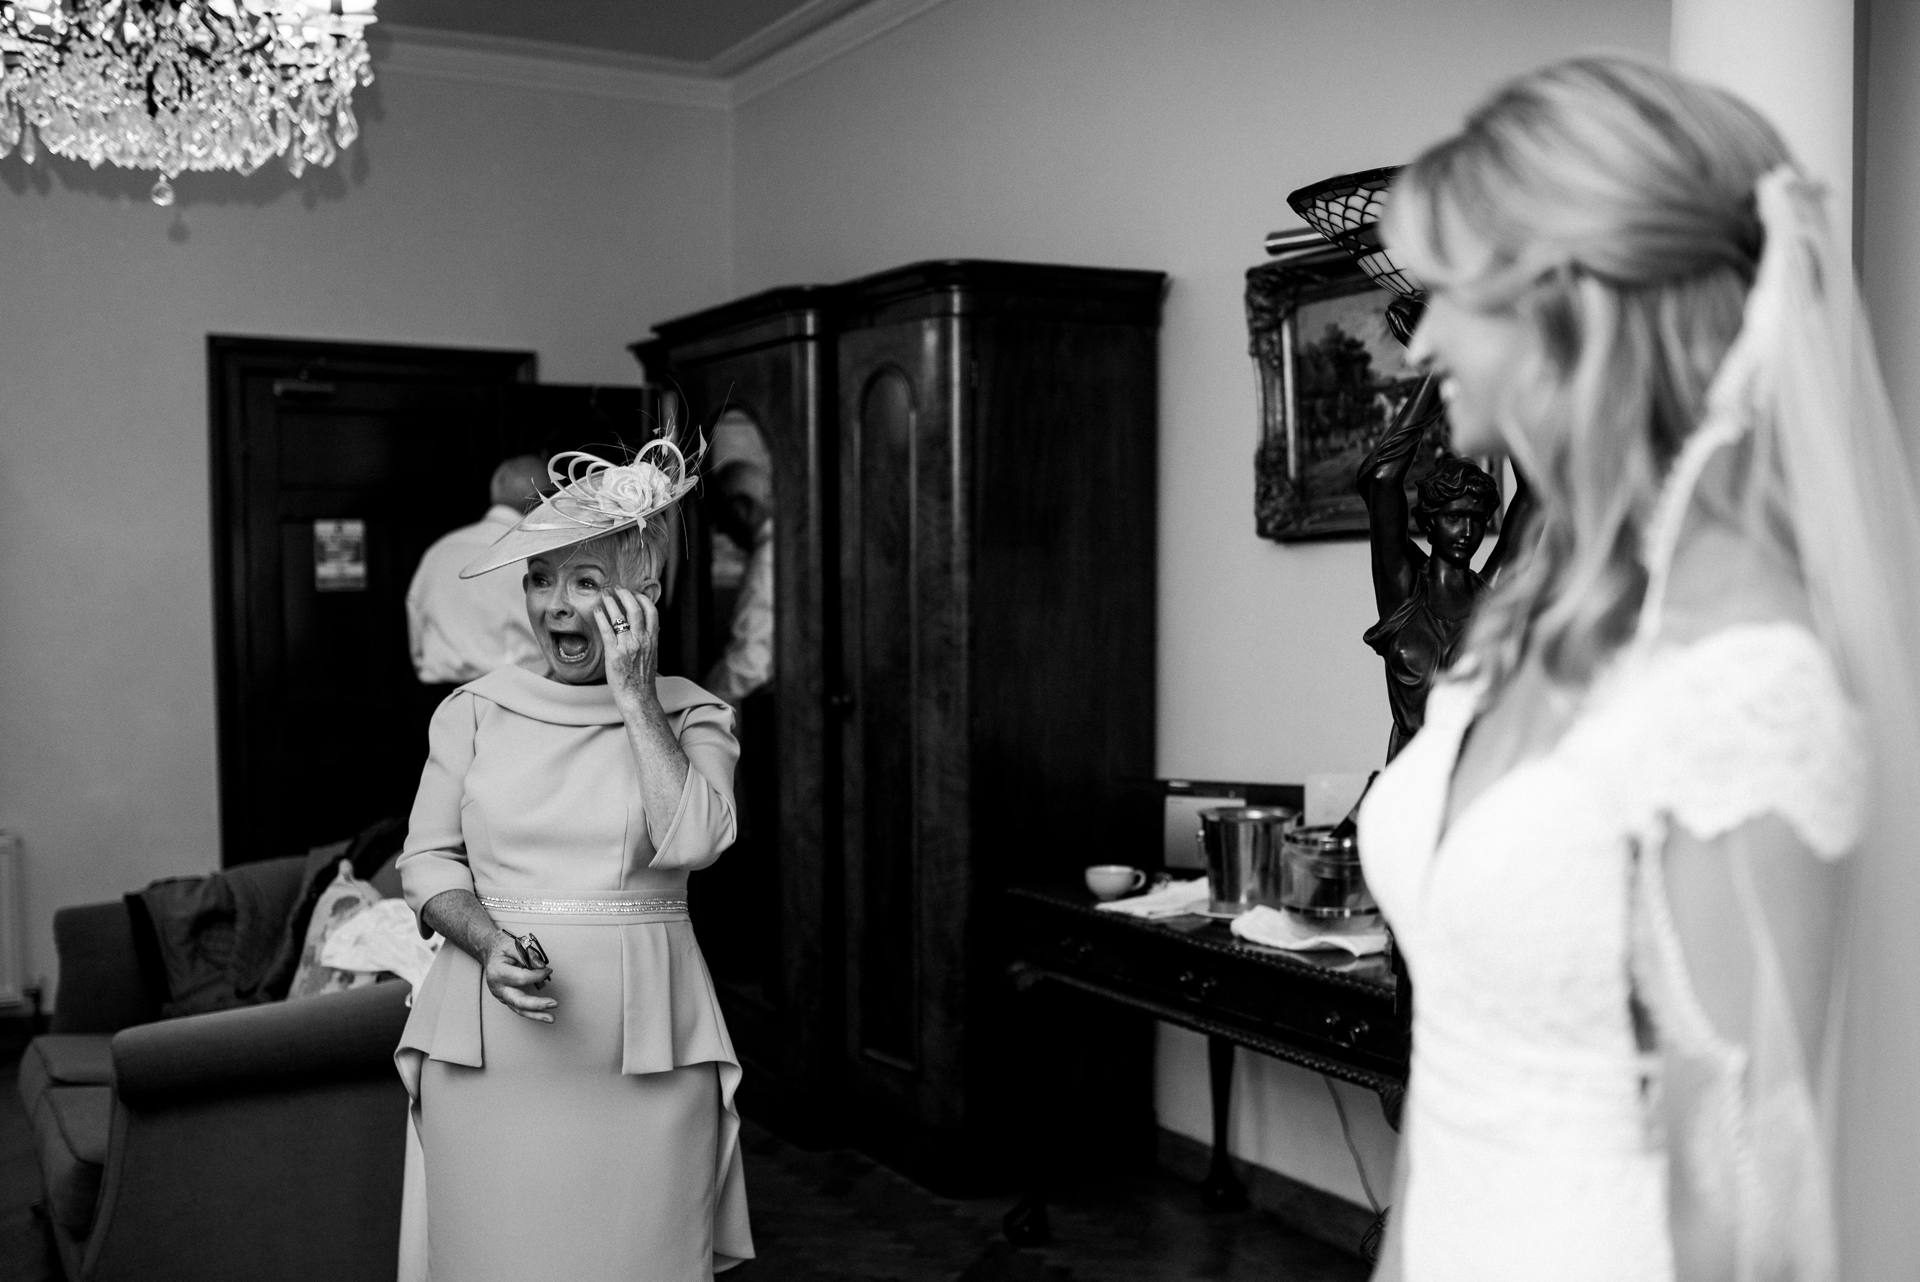 Mother of the bride seeing her daughter and laughing with joy